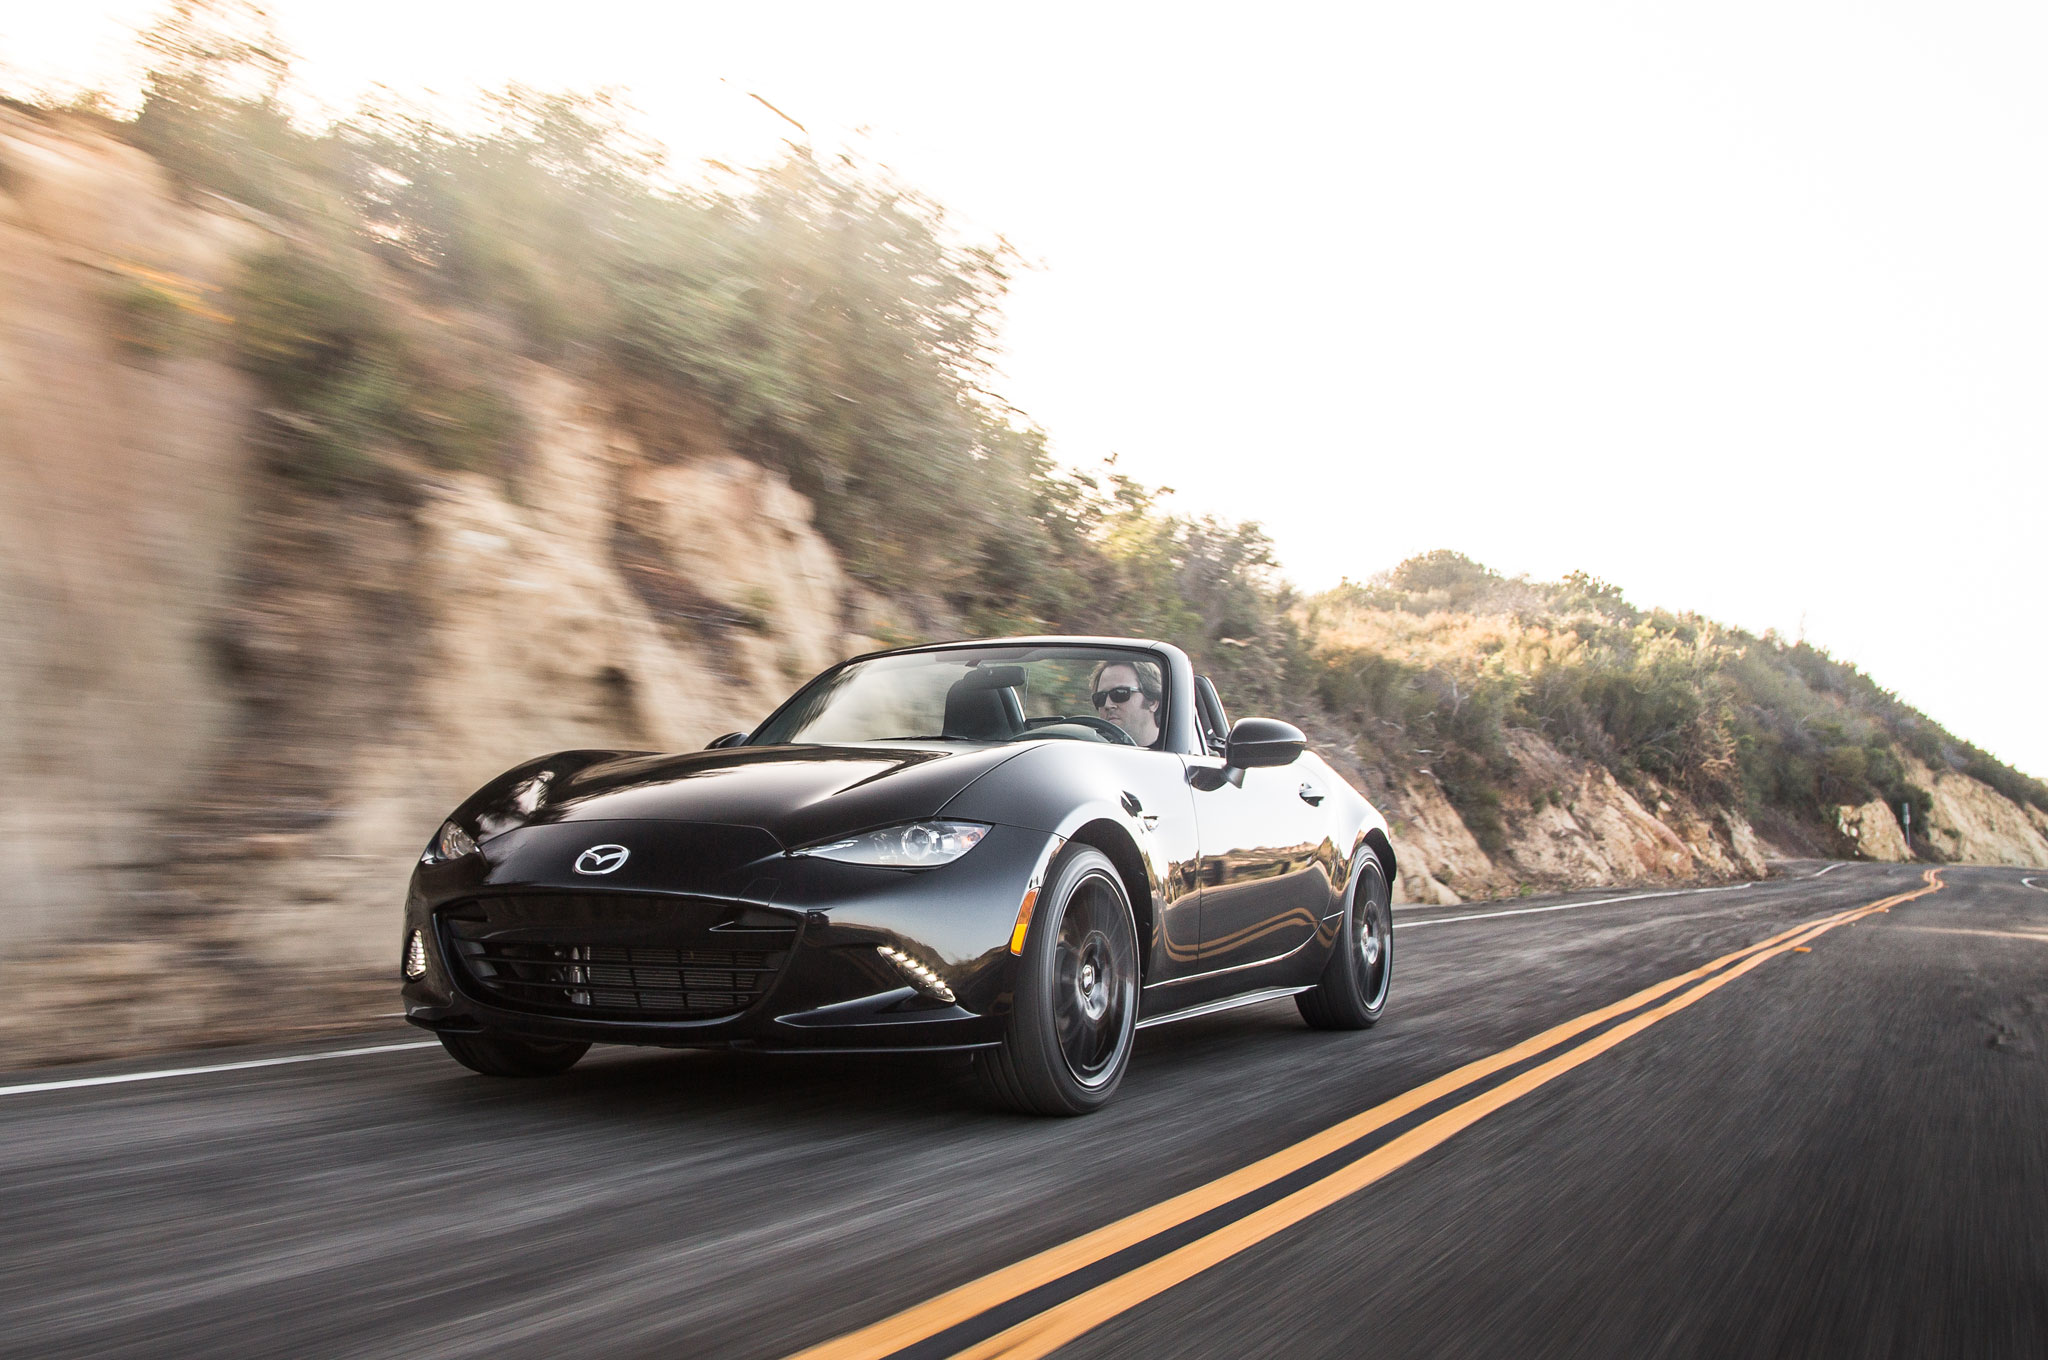 A Few More Thoughts on the New 2016 Mazda MX-5 Miata